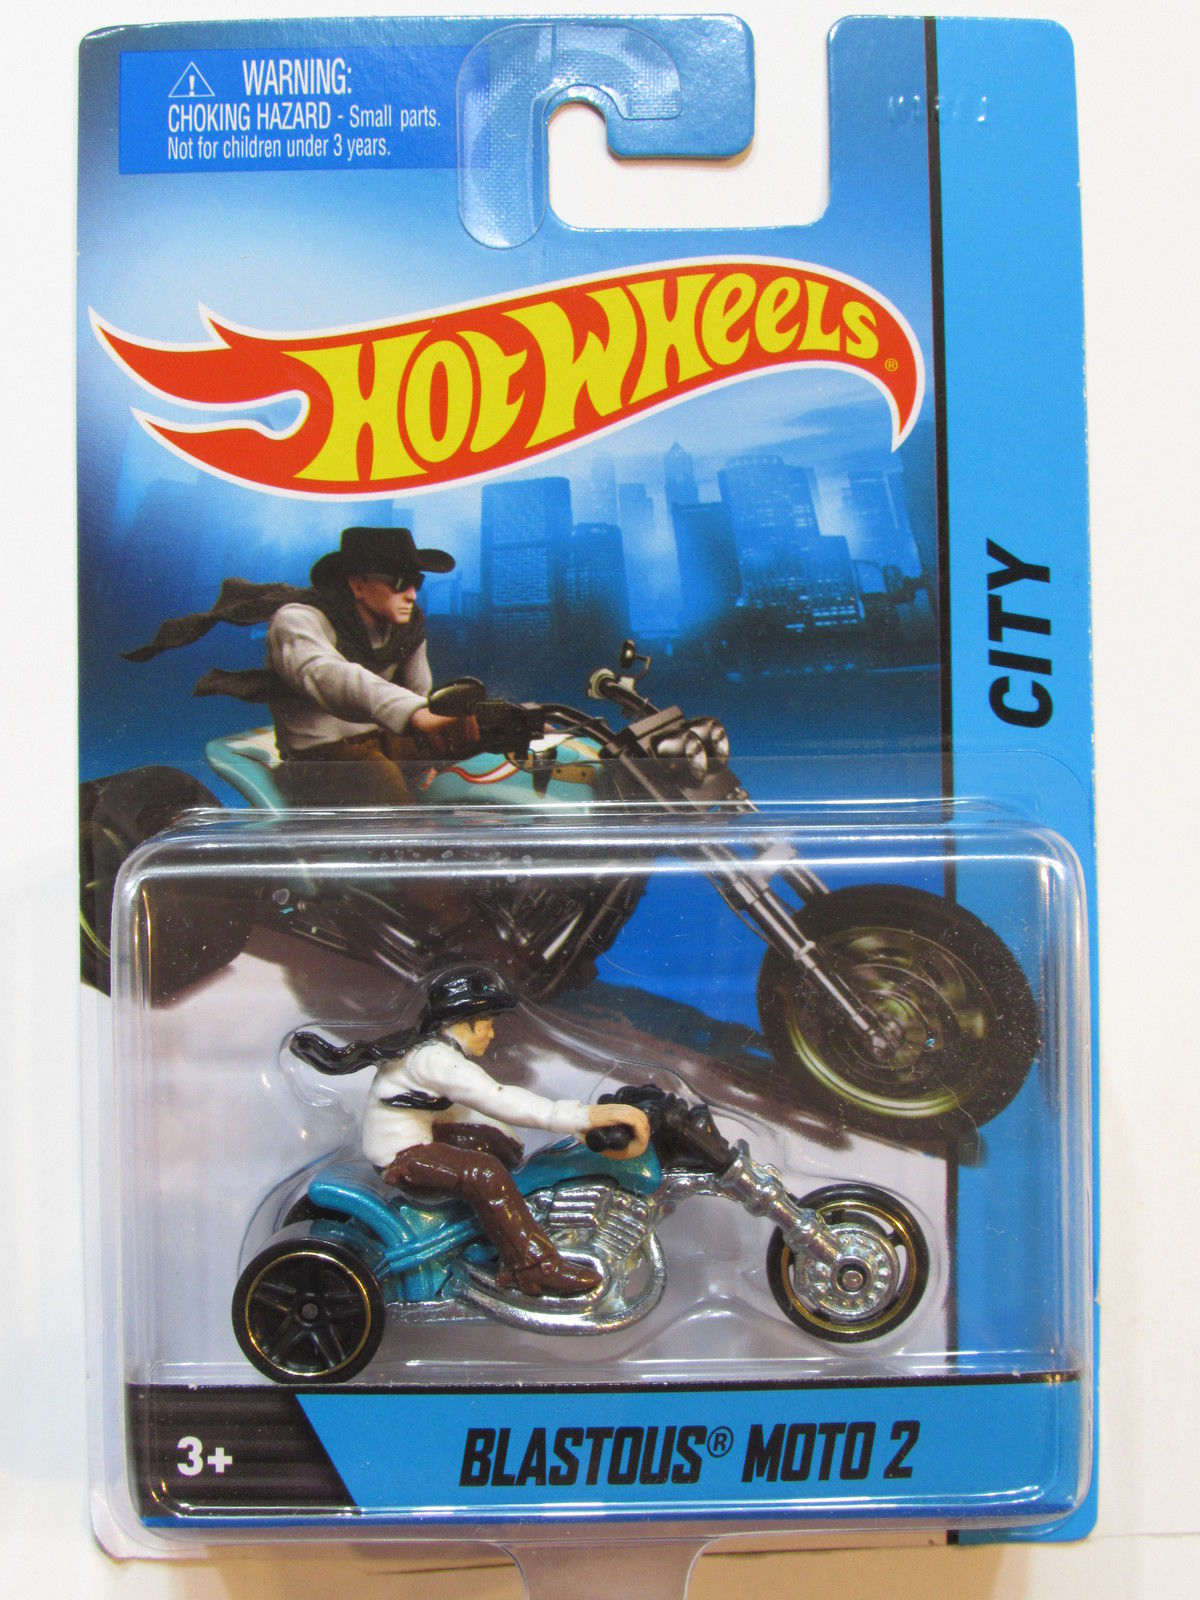 HOT WHEELS MOTORCYCLE - CITY BLASTOUS MOTO 2